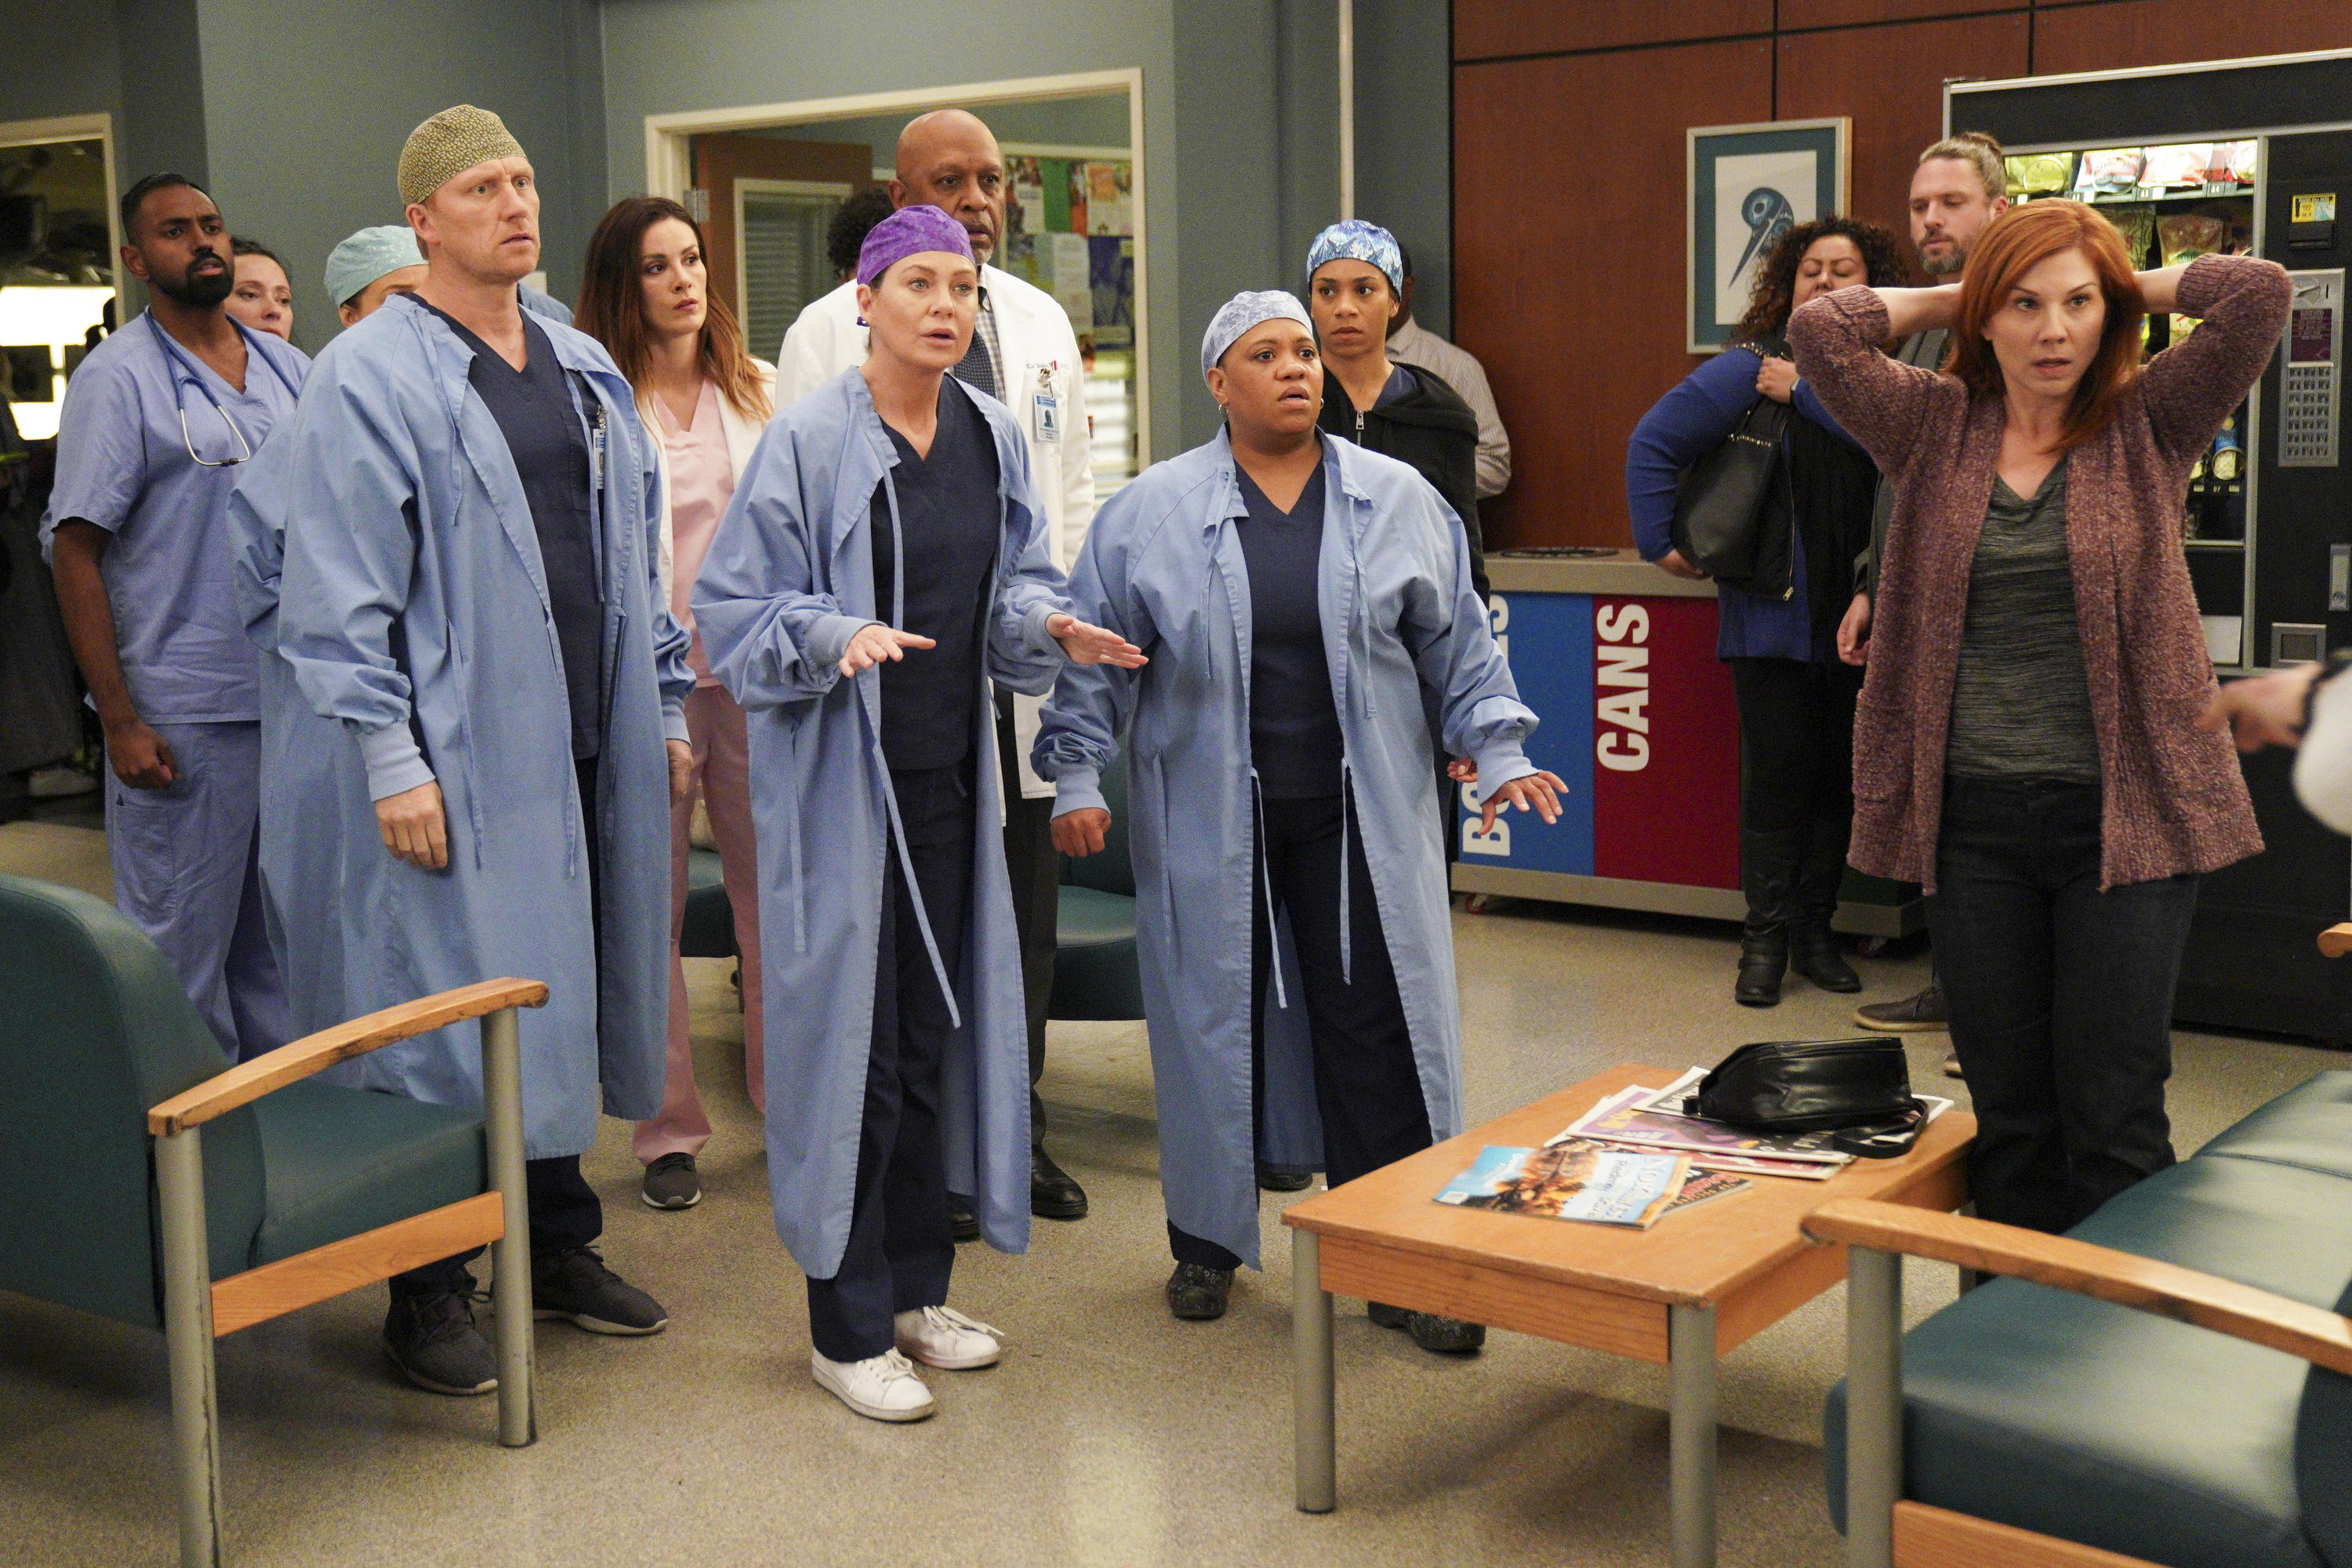 'Grey's Anatomy' season ending early after coronavirus concerns suspended production